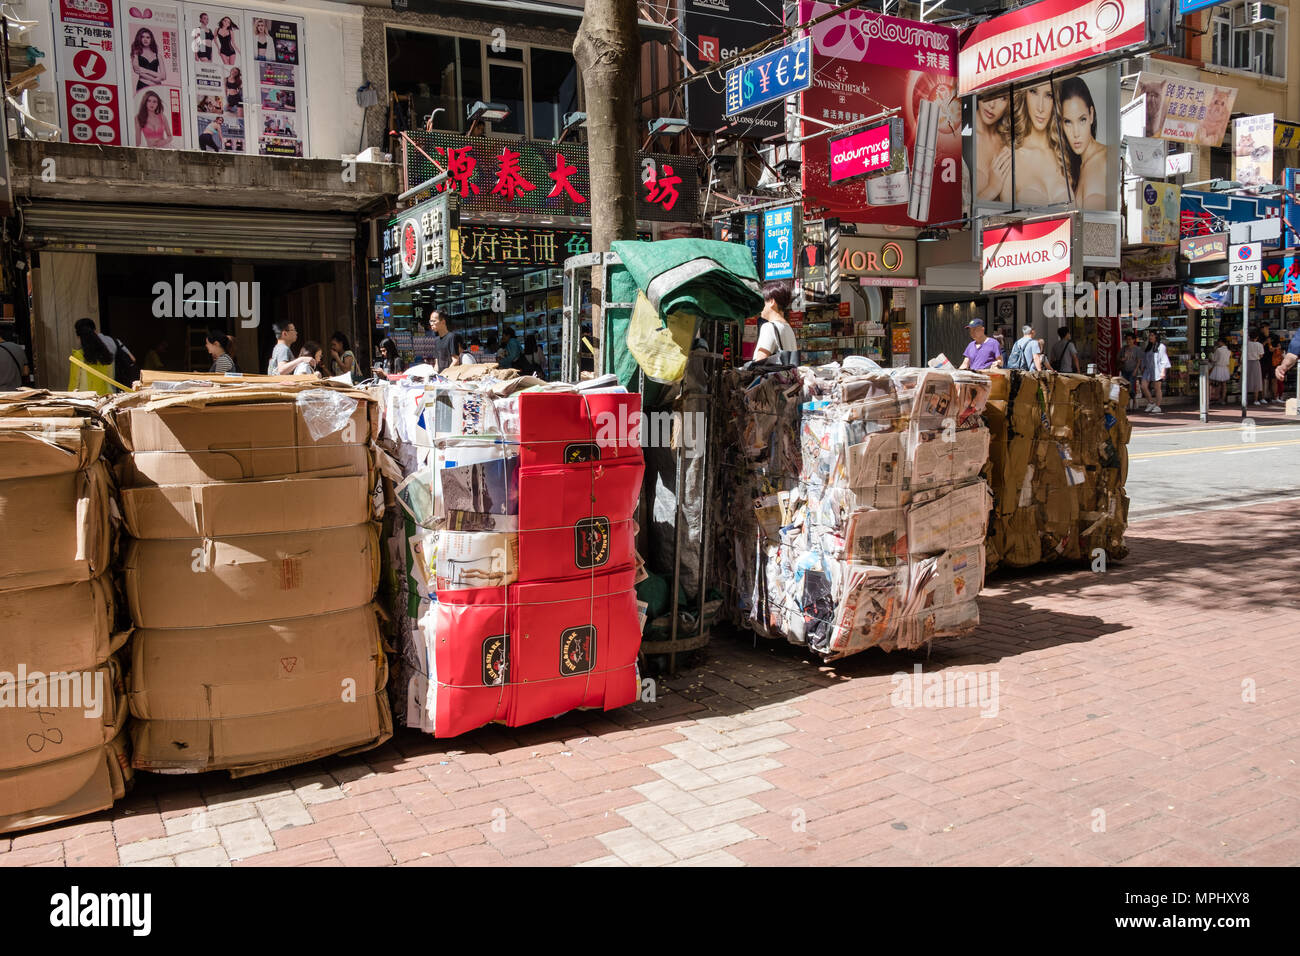 Office waste paper, old newspapers, cardboard packed for recycling. Urban scene. Environmental conservation concept. Hong Kong. - Stock Image